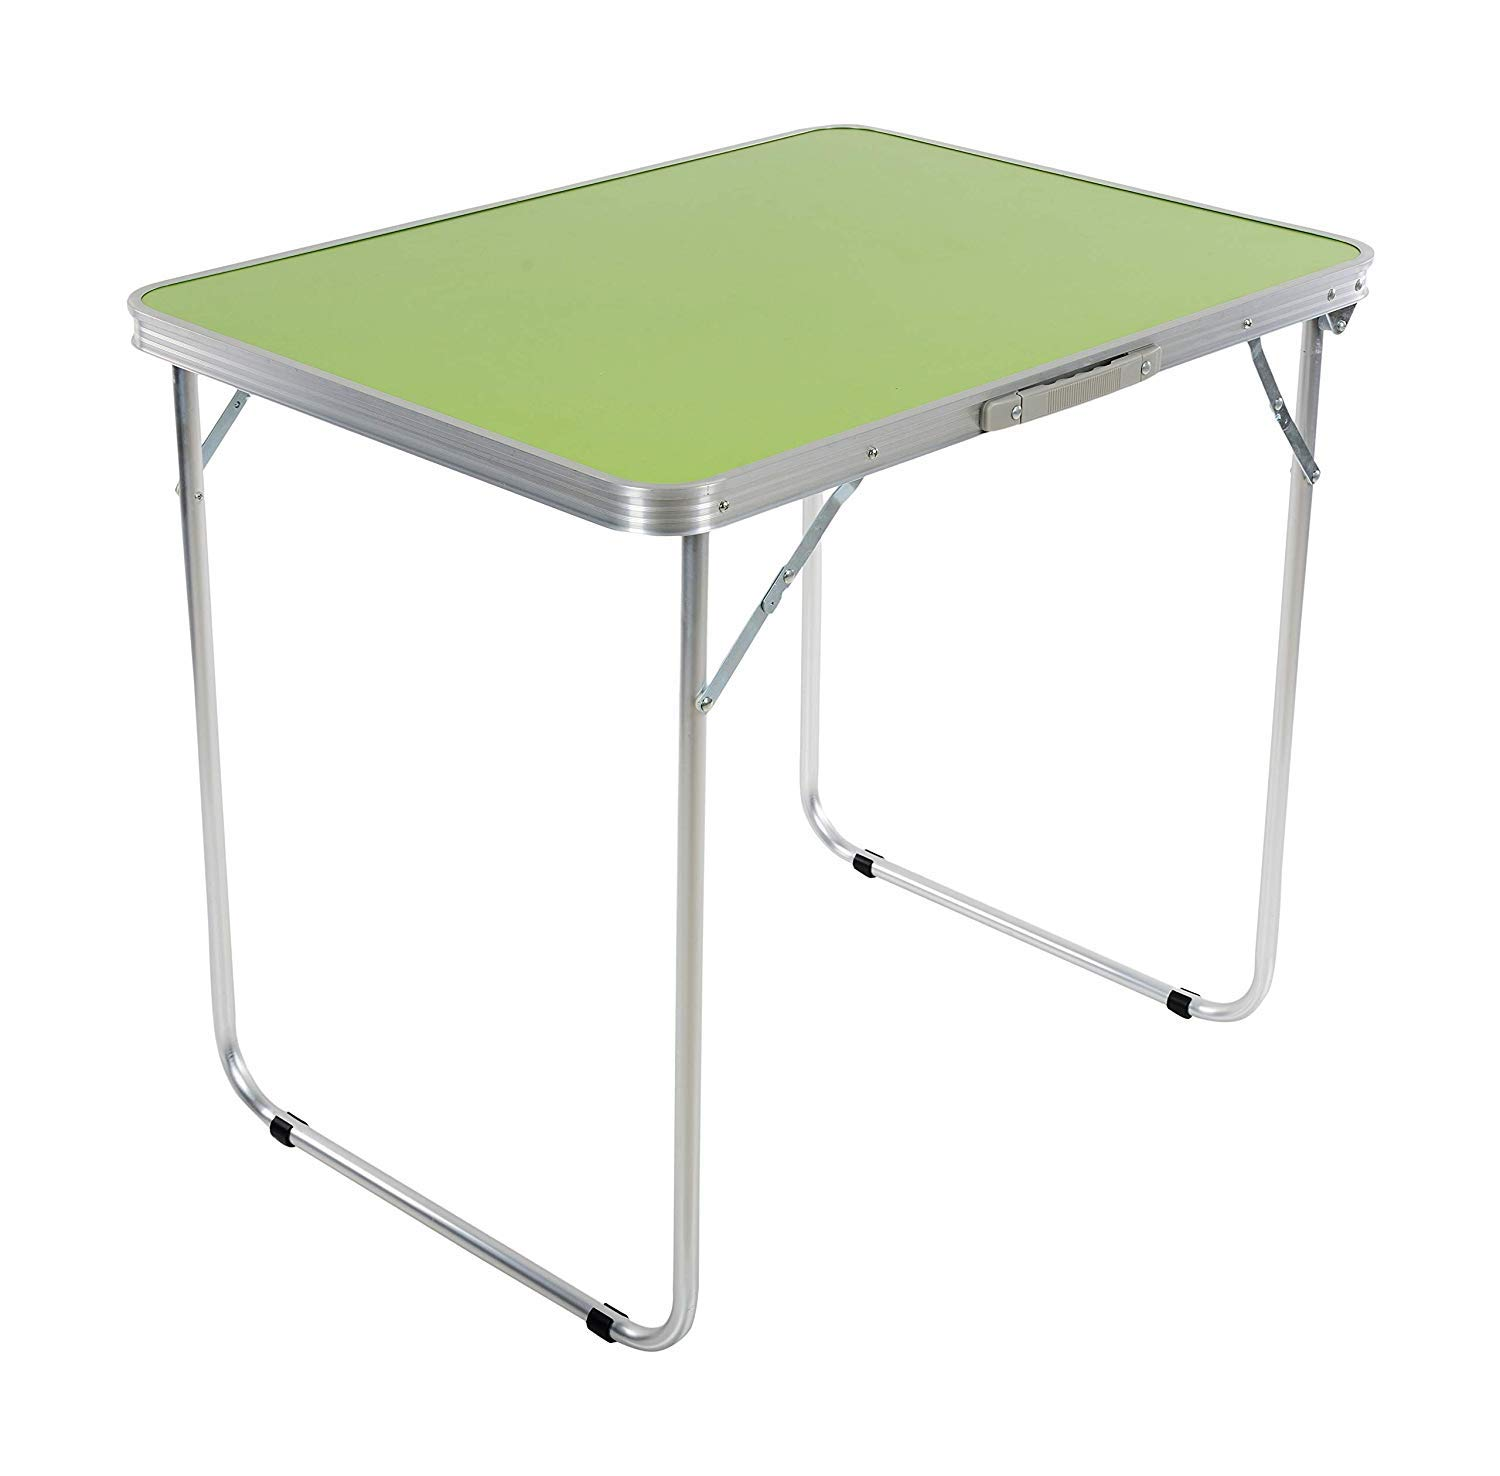 Kurtzy Aluminium Folding Table with Portable Carrying Handle for Picnic  Camping Outdoor (5x5x5cm)